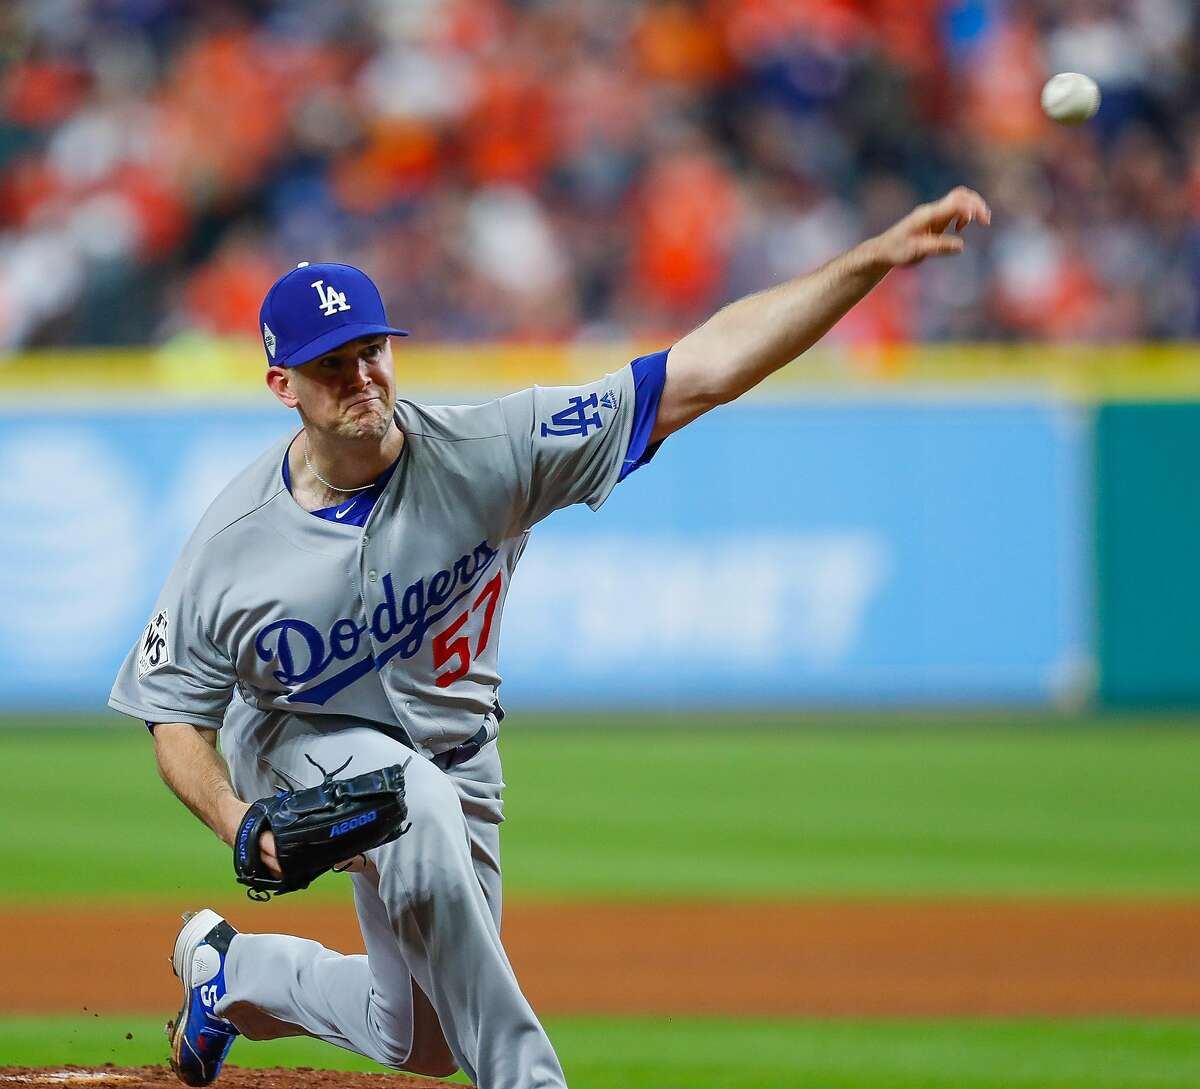 Los Angeles Dodgers starting pitcher Alex Wood (57) pitches during the fourth inning of Game 4 of the World Series at Minute Maid Park on Saturday, Oct. 28, 2017, in Houston.